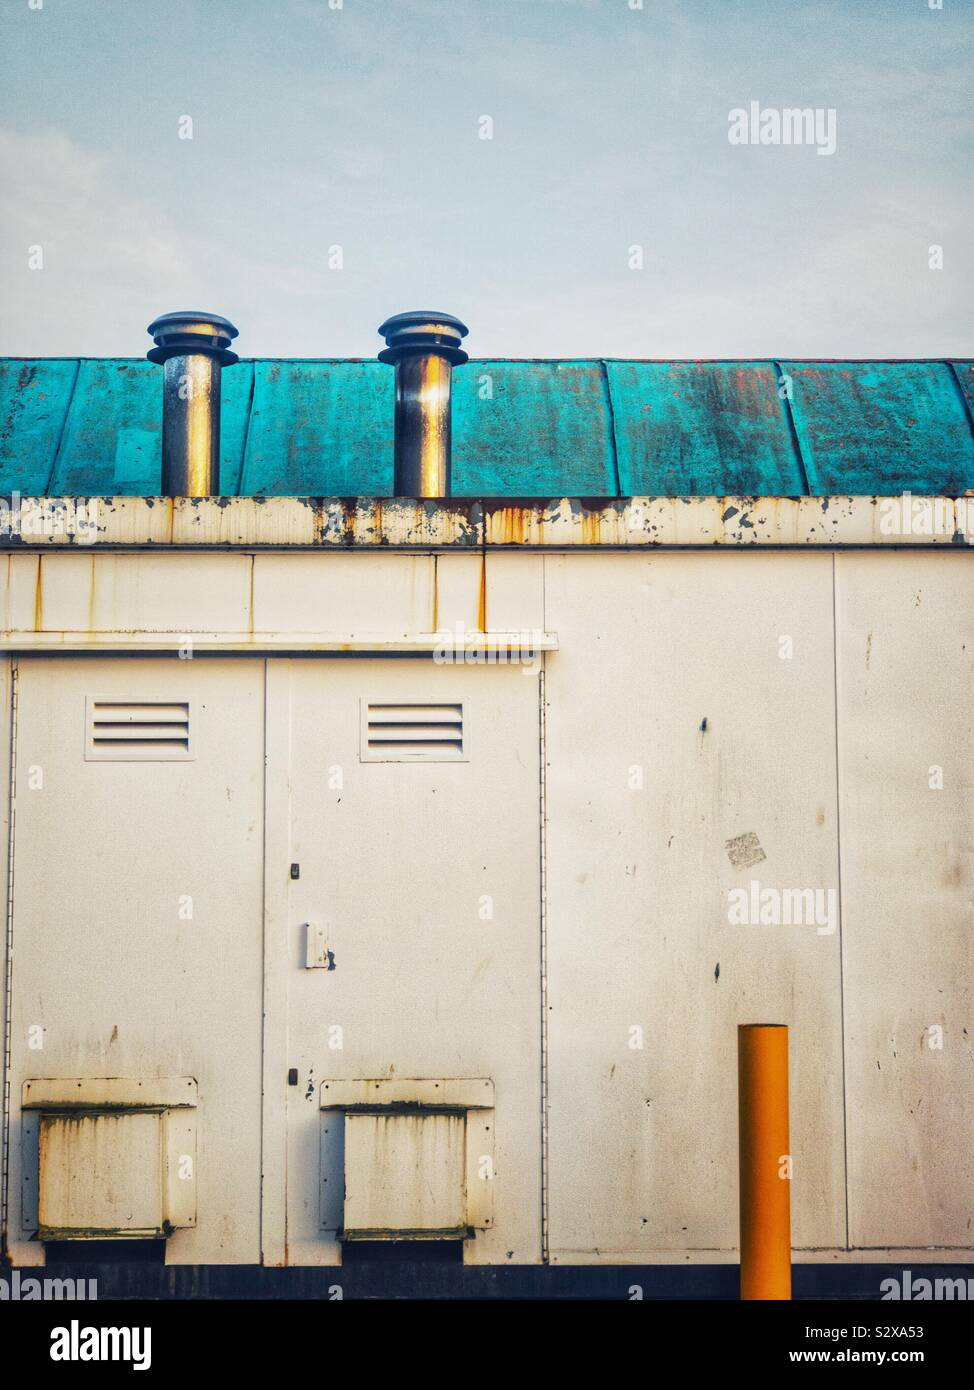 Industrial equipment on side of building. Banque D'Images